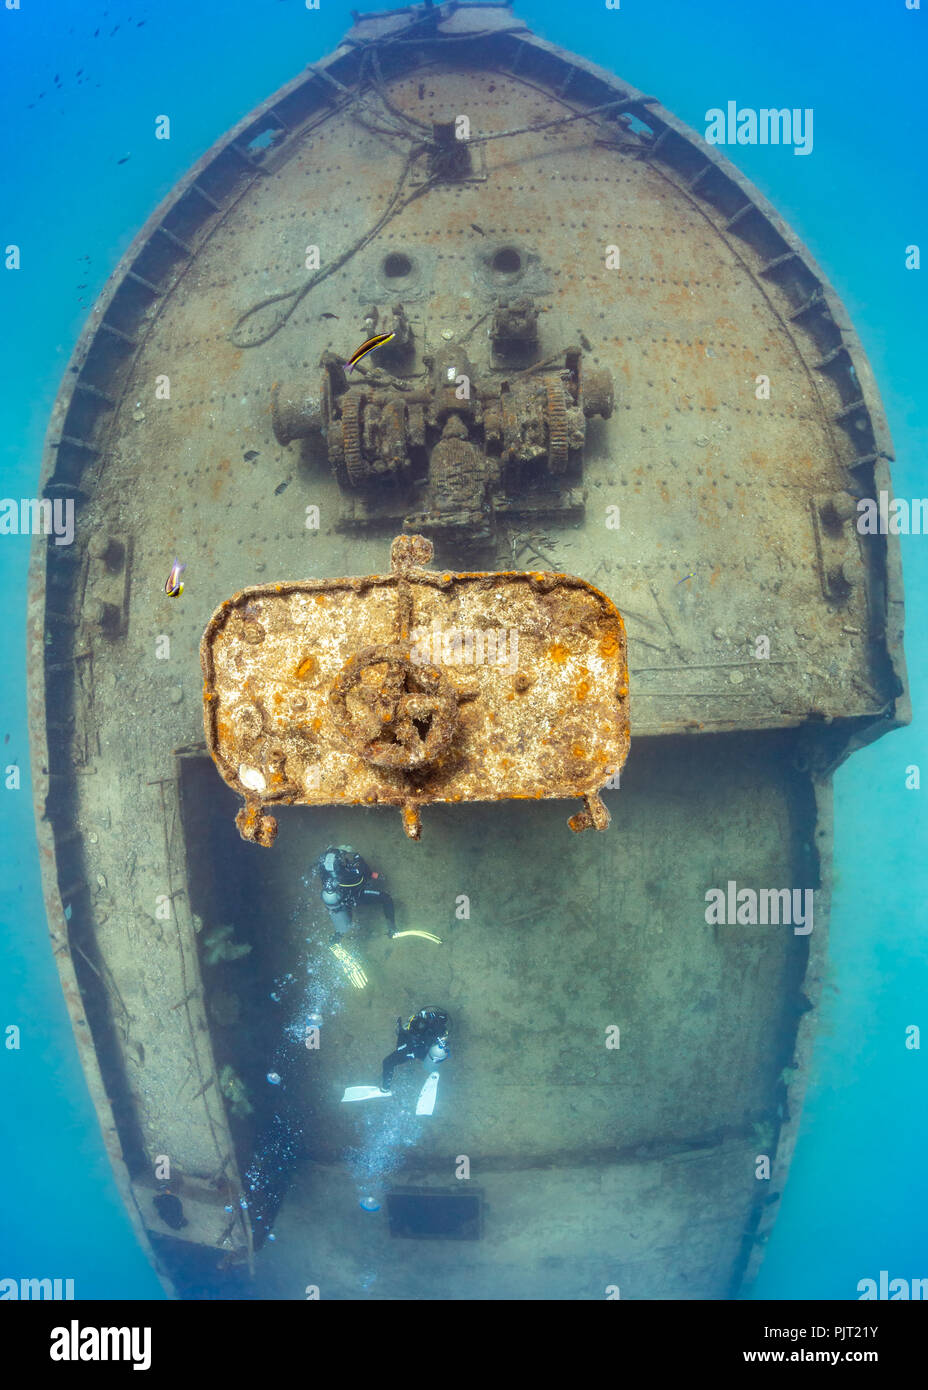 Overhead of divers exploring the Fang Ming Wreck, La Paz, Sea of Cortez - Stock Image